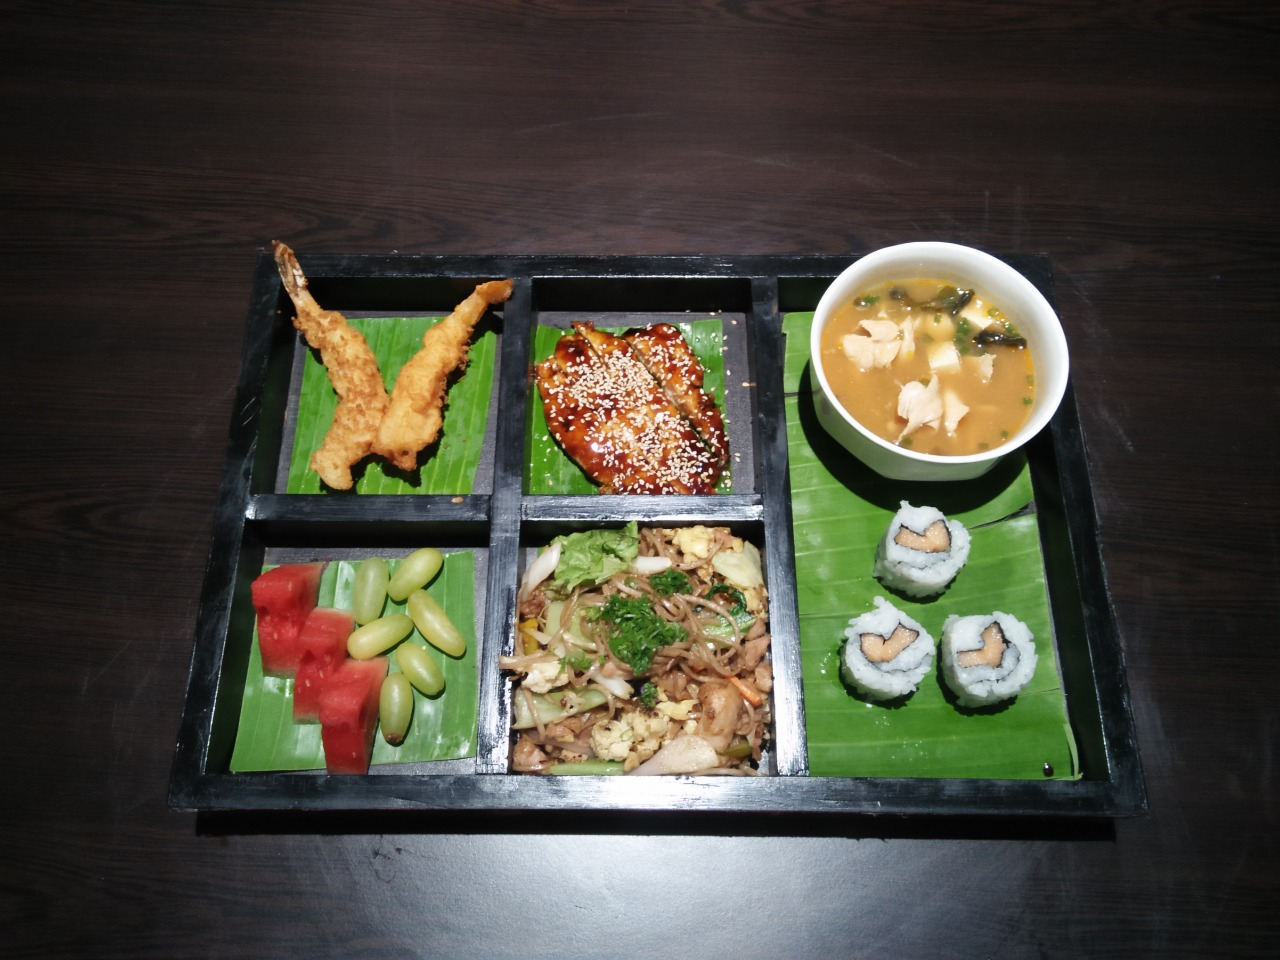 BENTO BOXES AND LUNCH COMBO OFFERS AT WASABEE